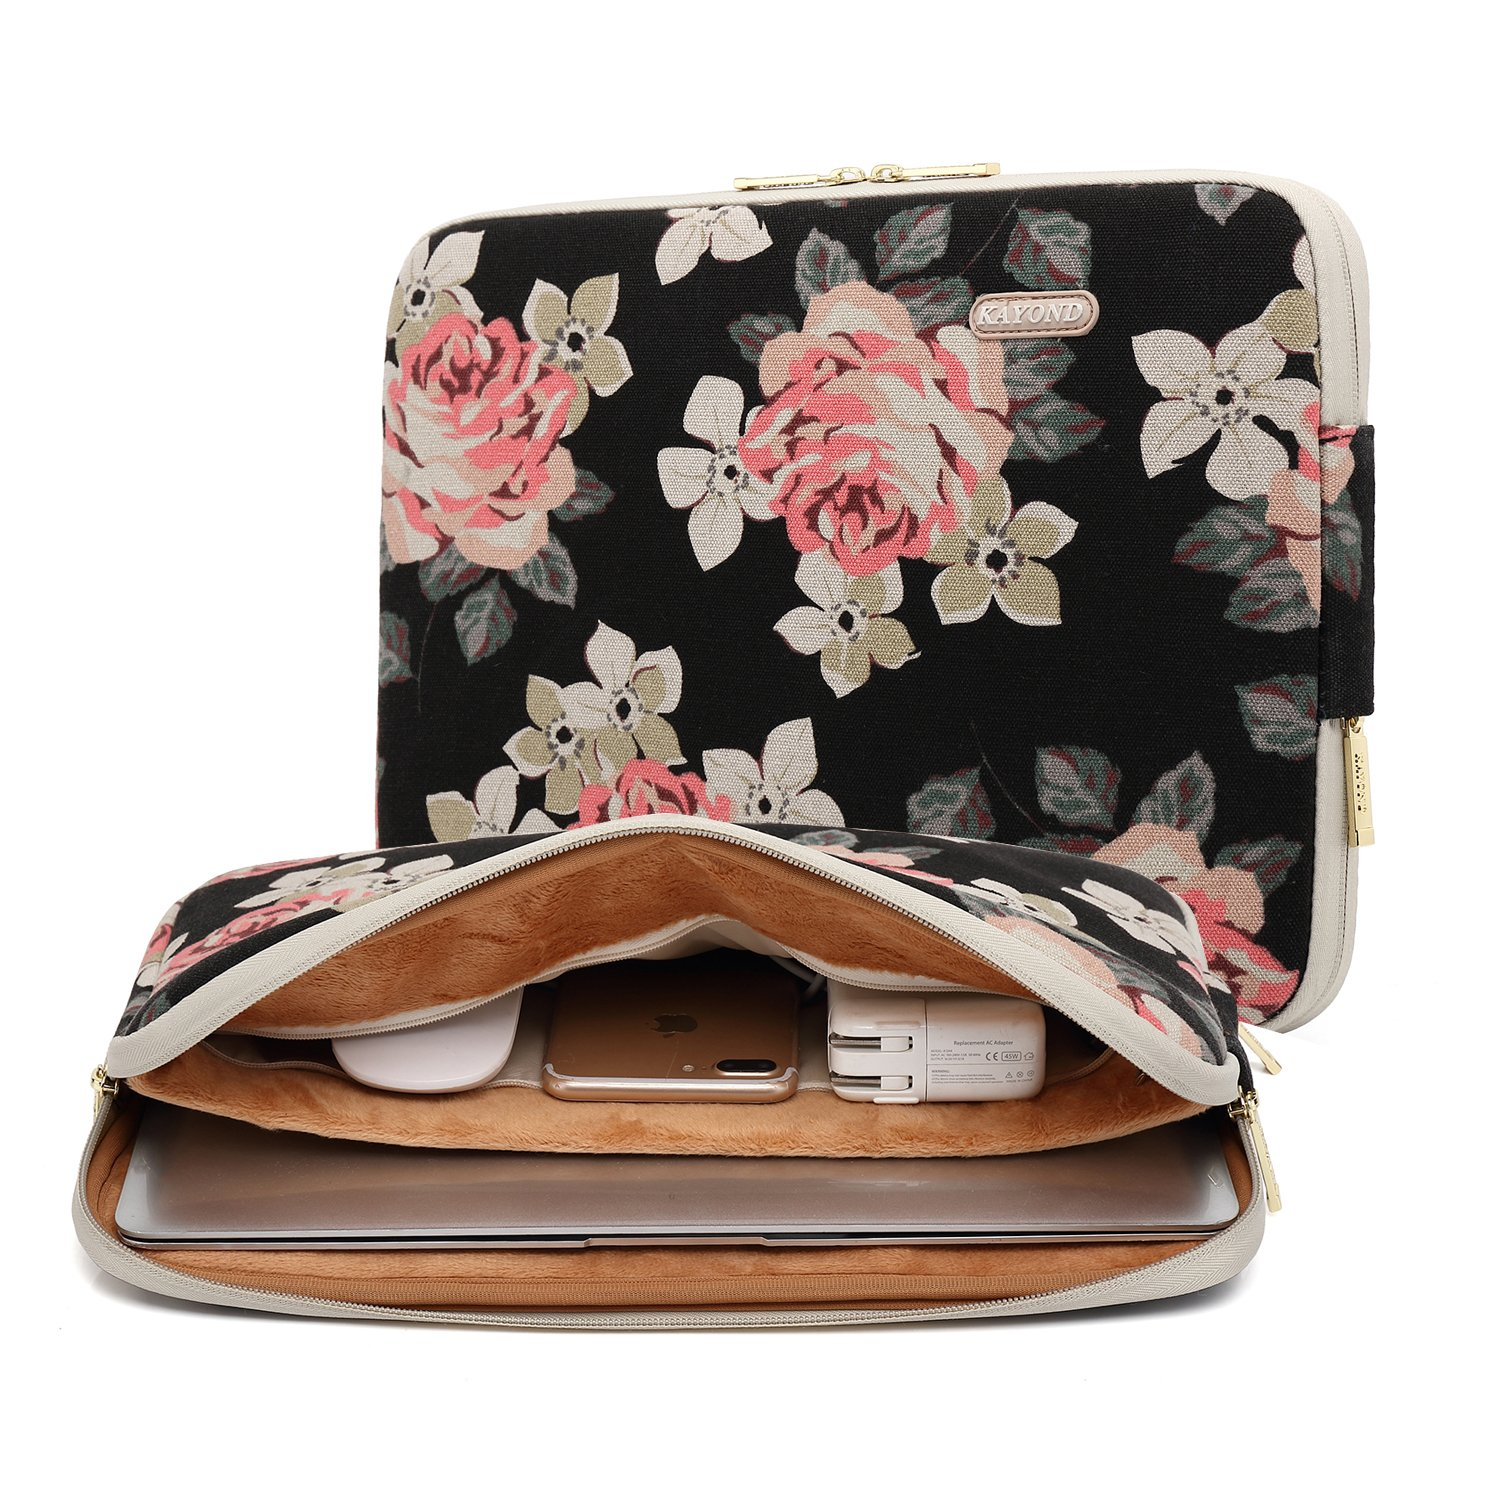 KAYOND Black Rose Patten canvas Water-resistant 13.3 Inch Laptop Sleeve